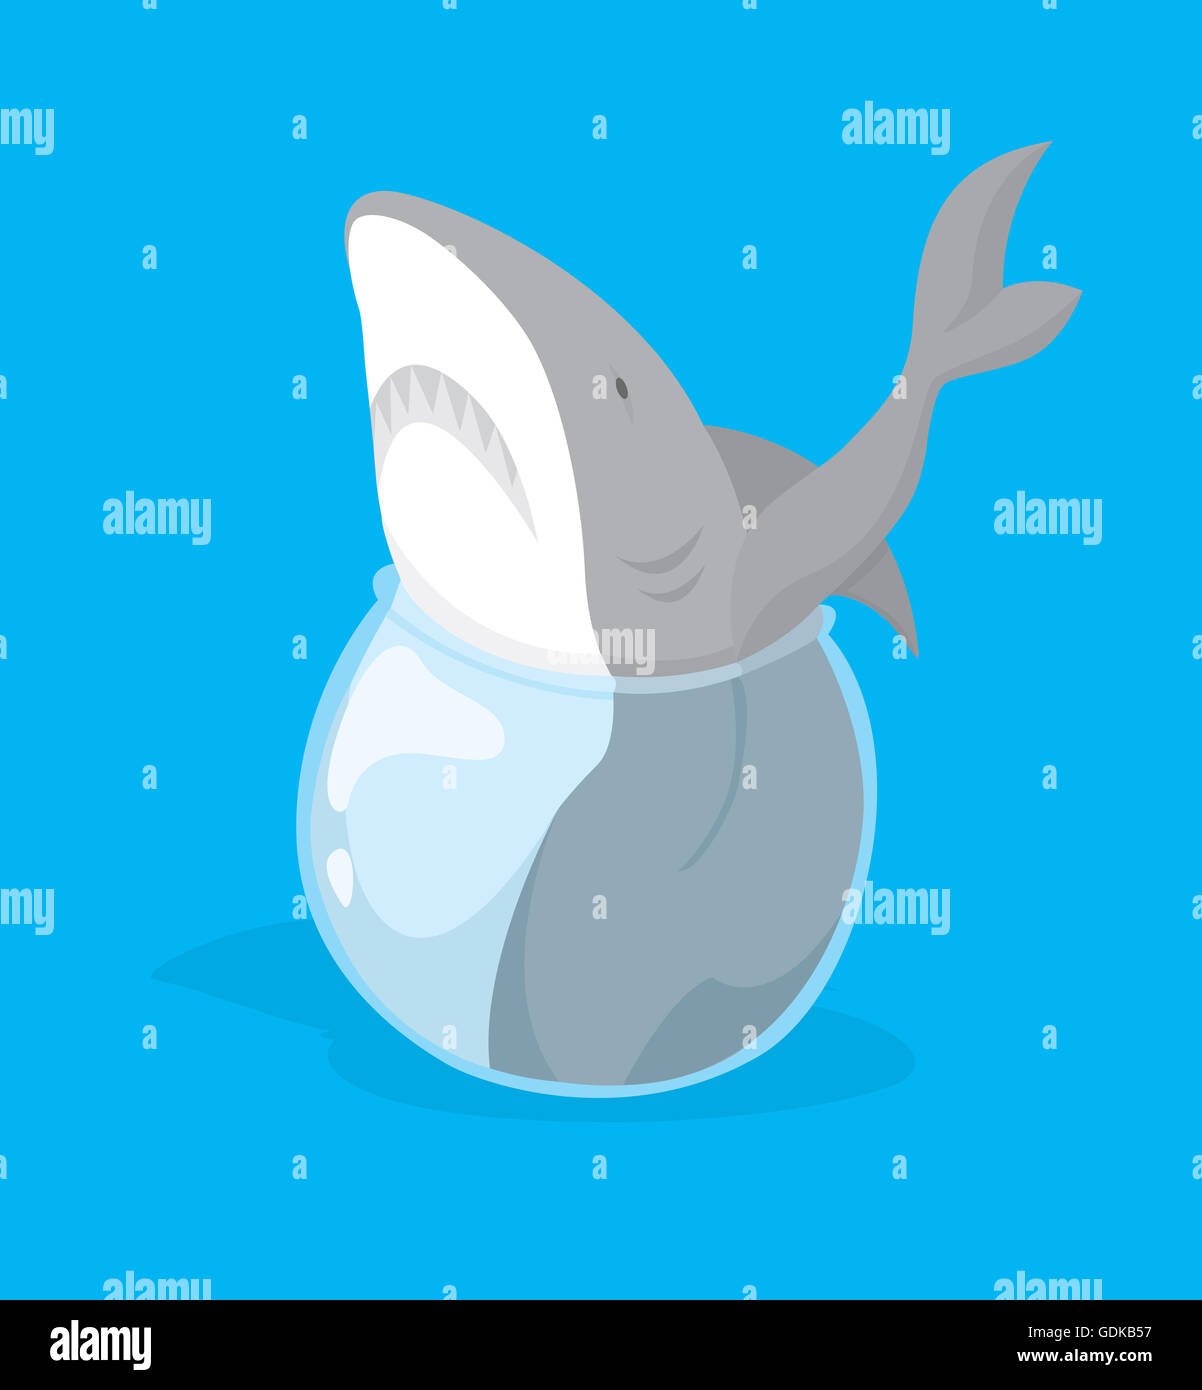 funny cartoon illustration of big fish or shark stuck in small